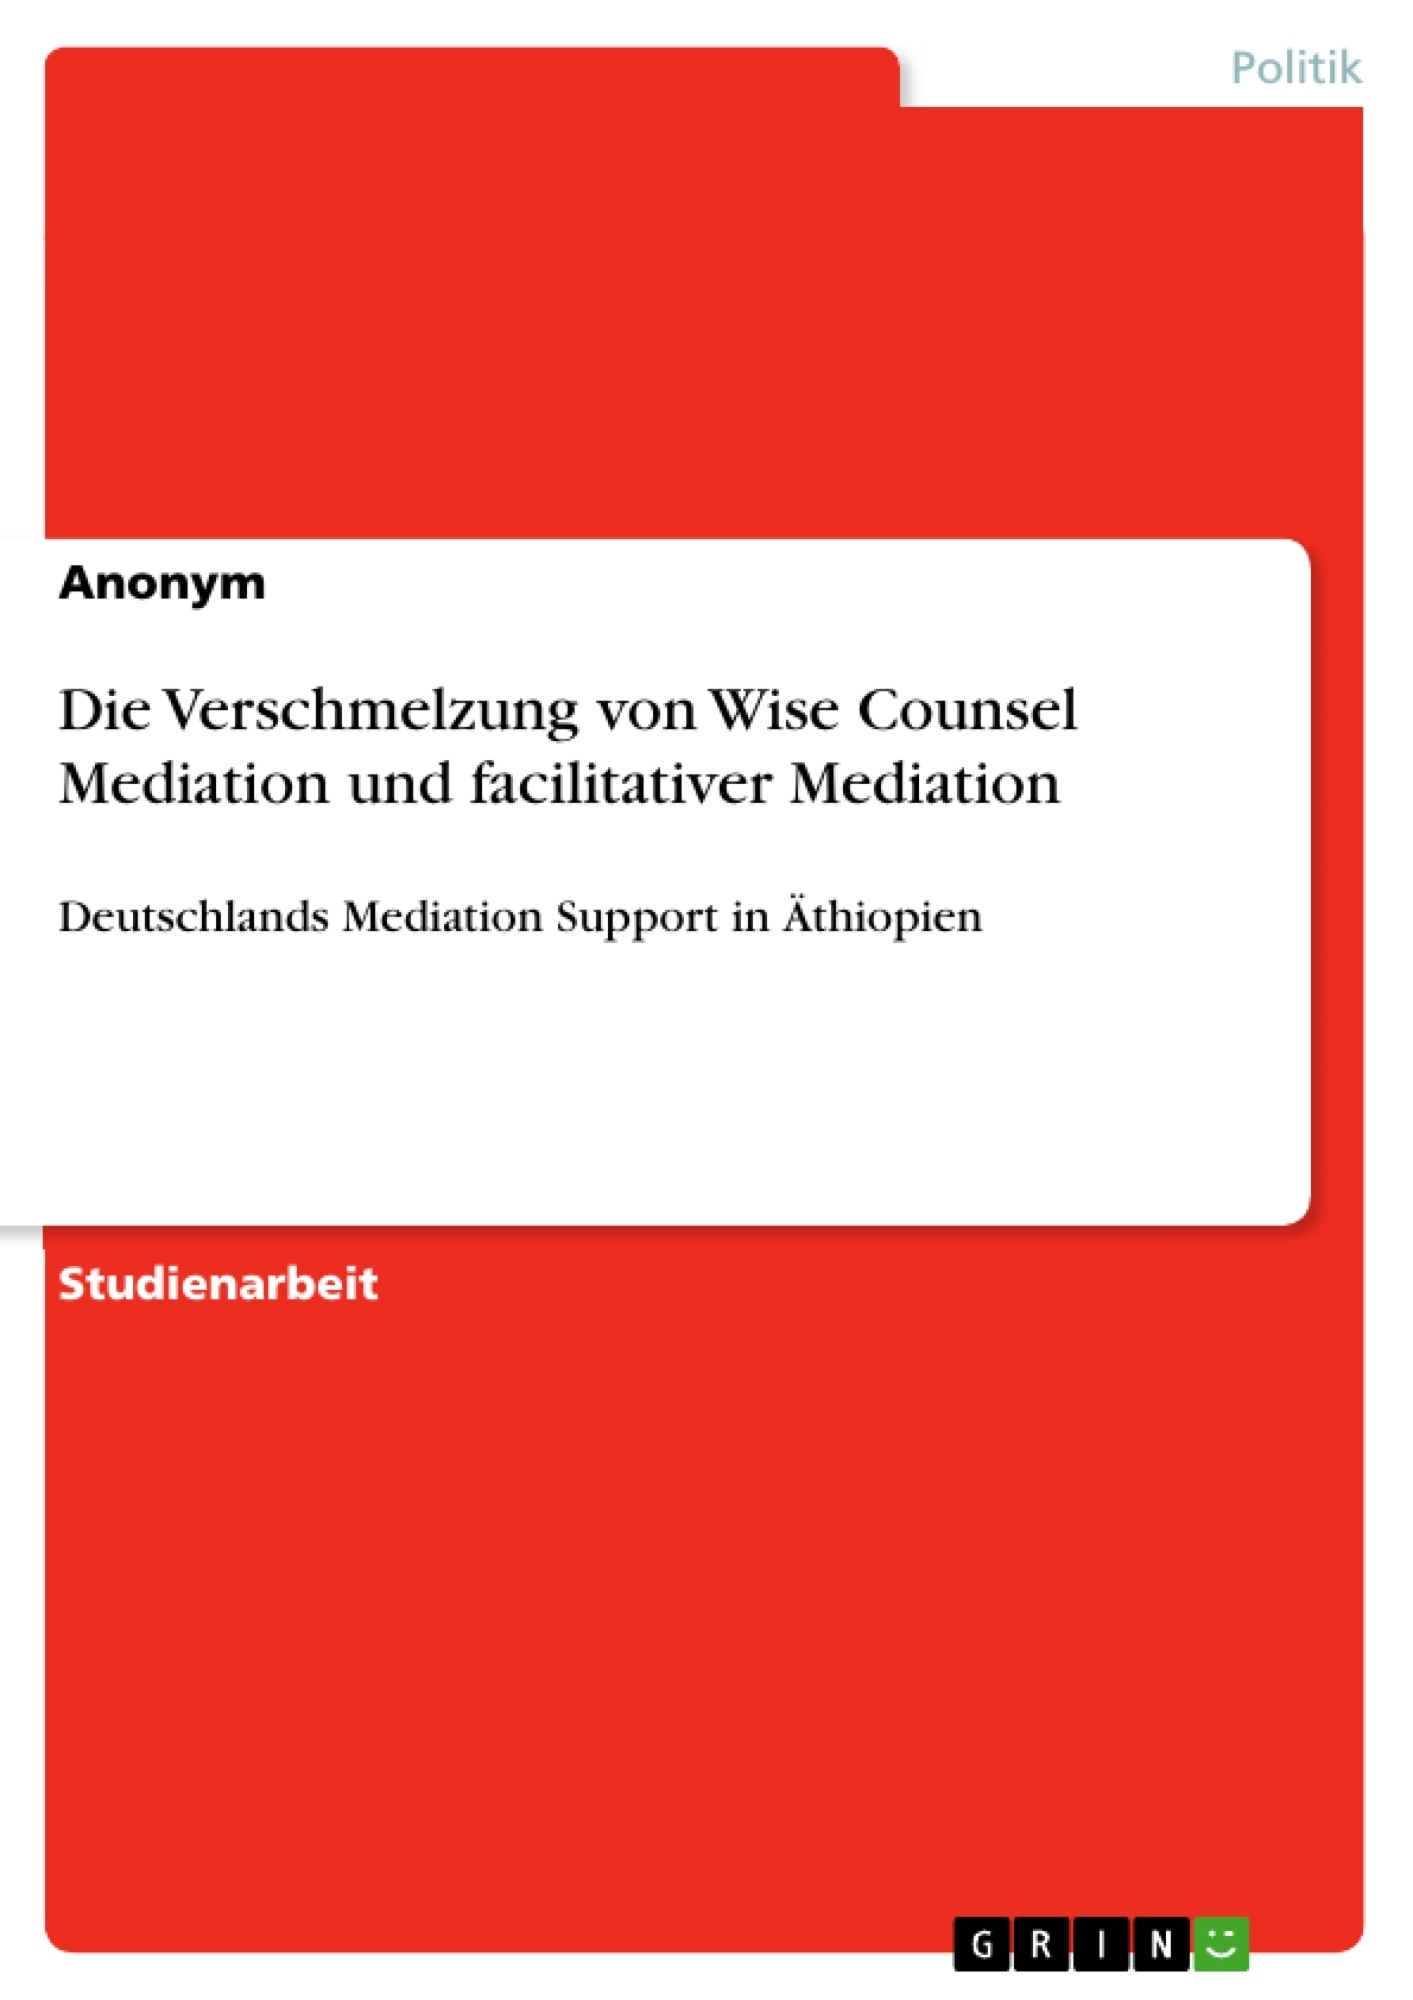 Titel: Die Verschmelzung von Wise Counsel Mediation und facilitativer Mediation